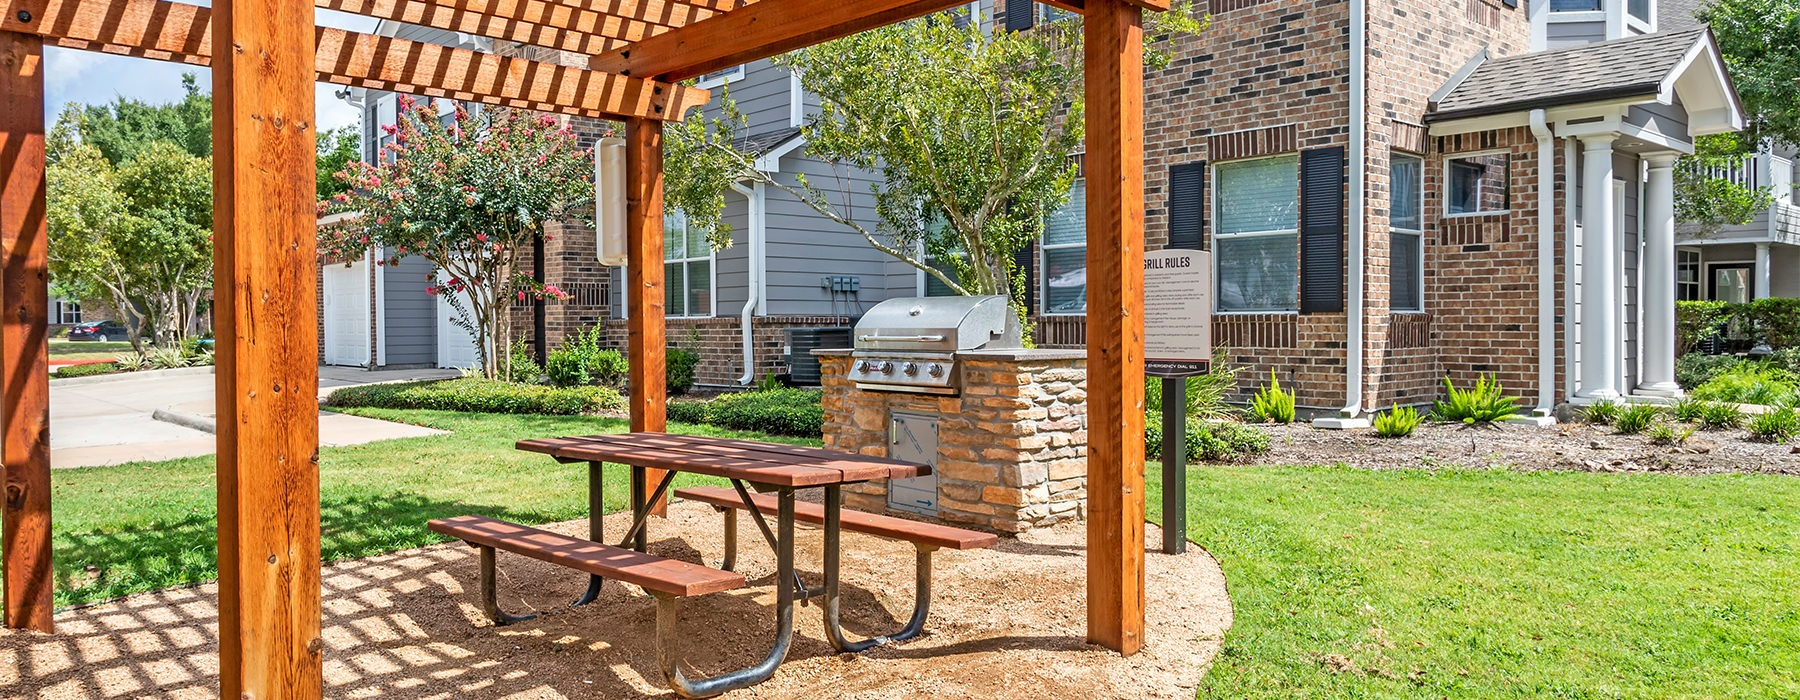 Beautiful and large picnic area with a gas grill